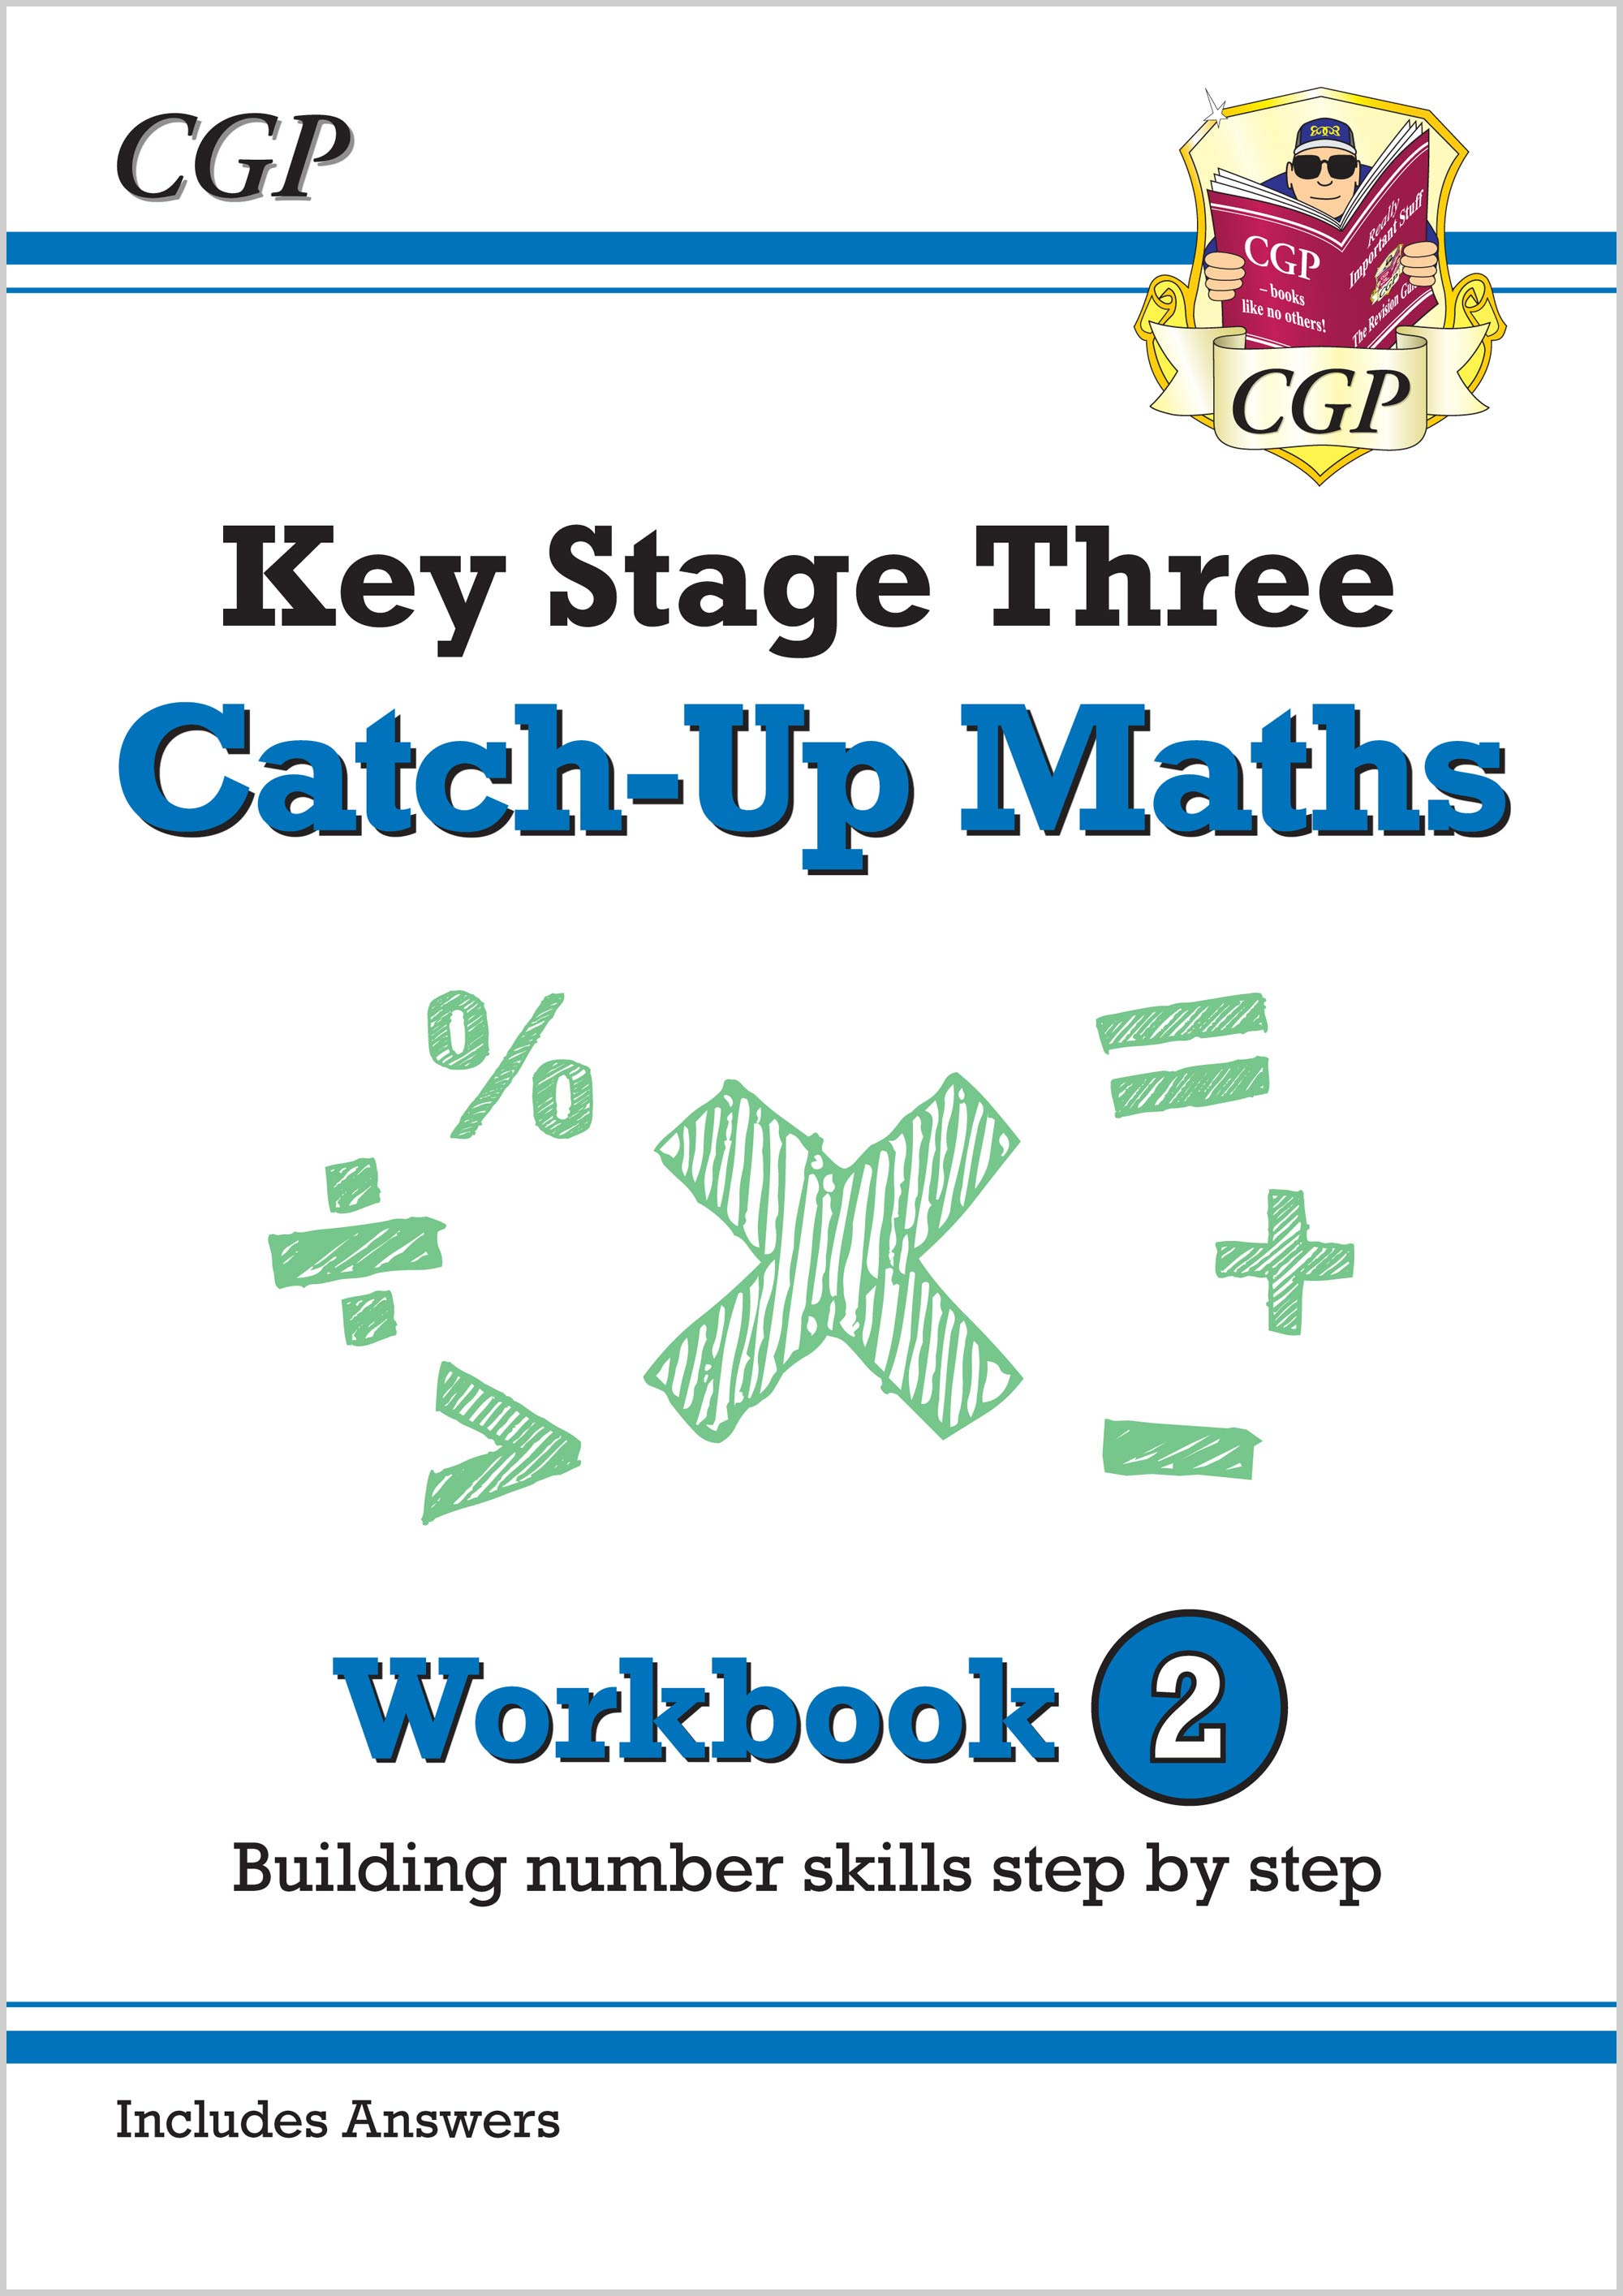 MBNW231 - KS3 Maths Catch-Up Workbook 2 (with Answers)